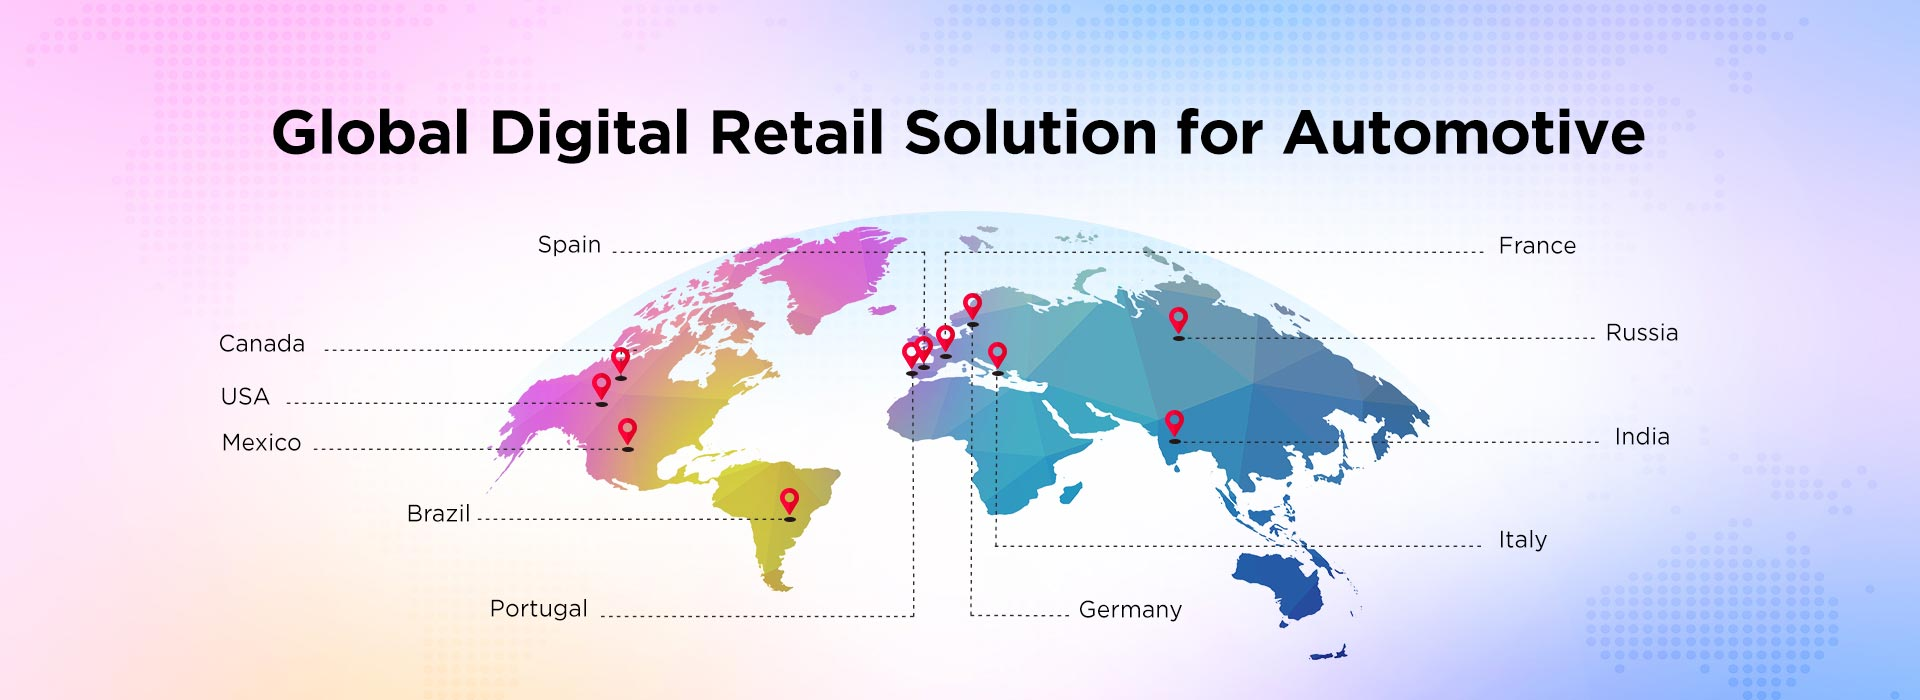 Global Digital Retail Solution for Automotive